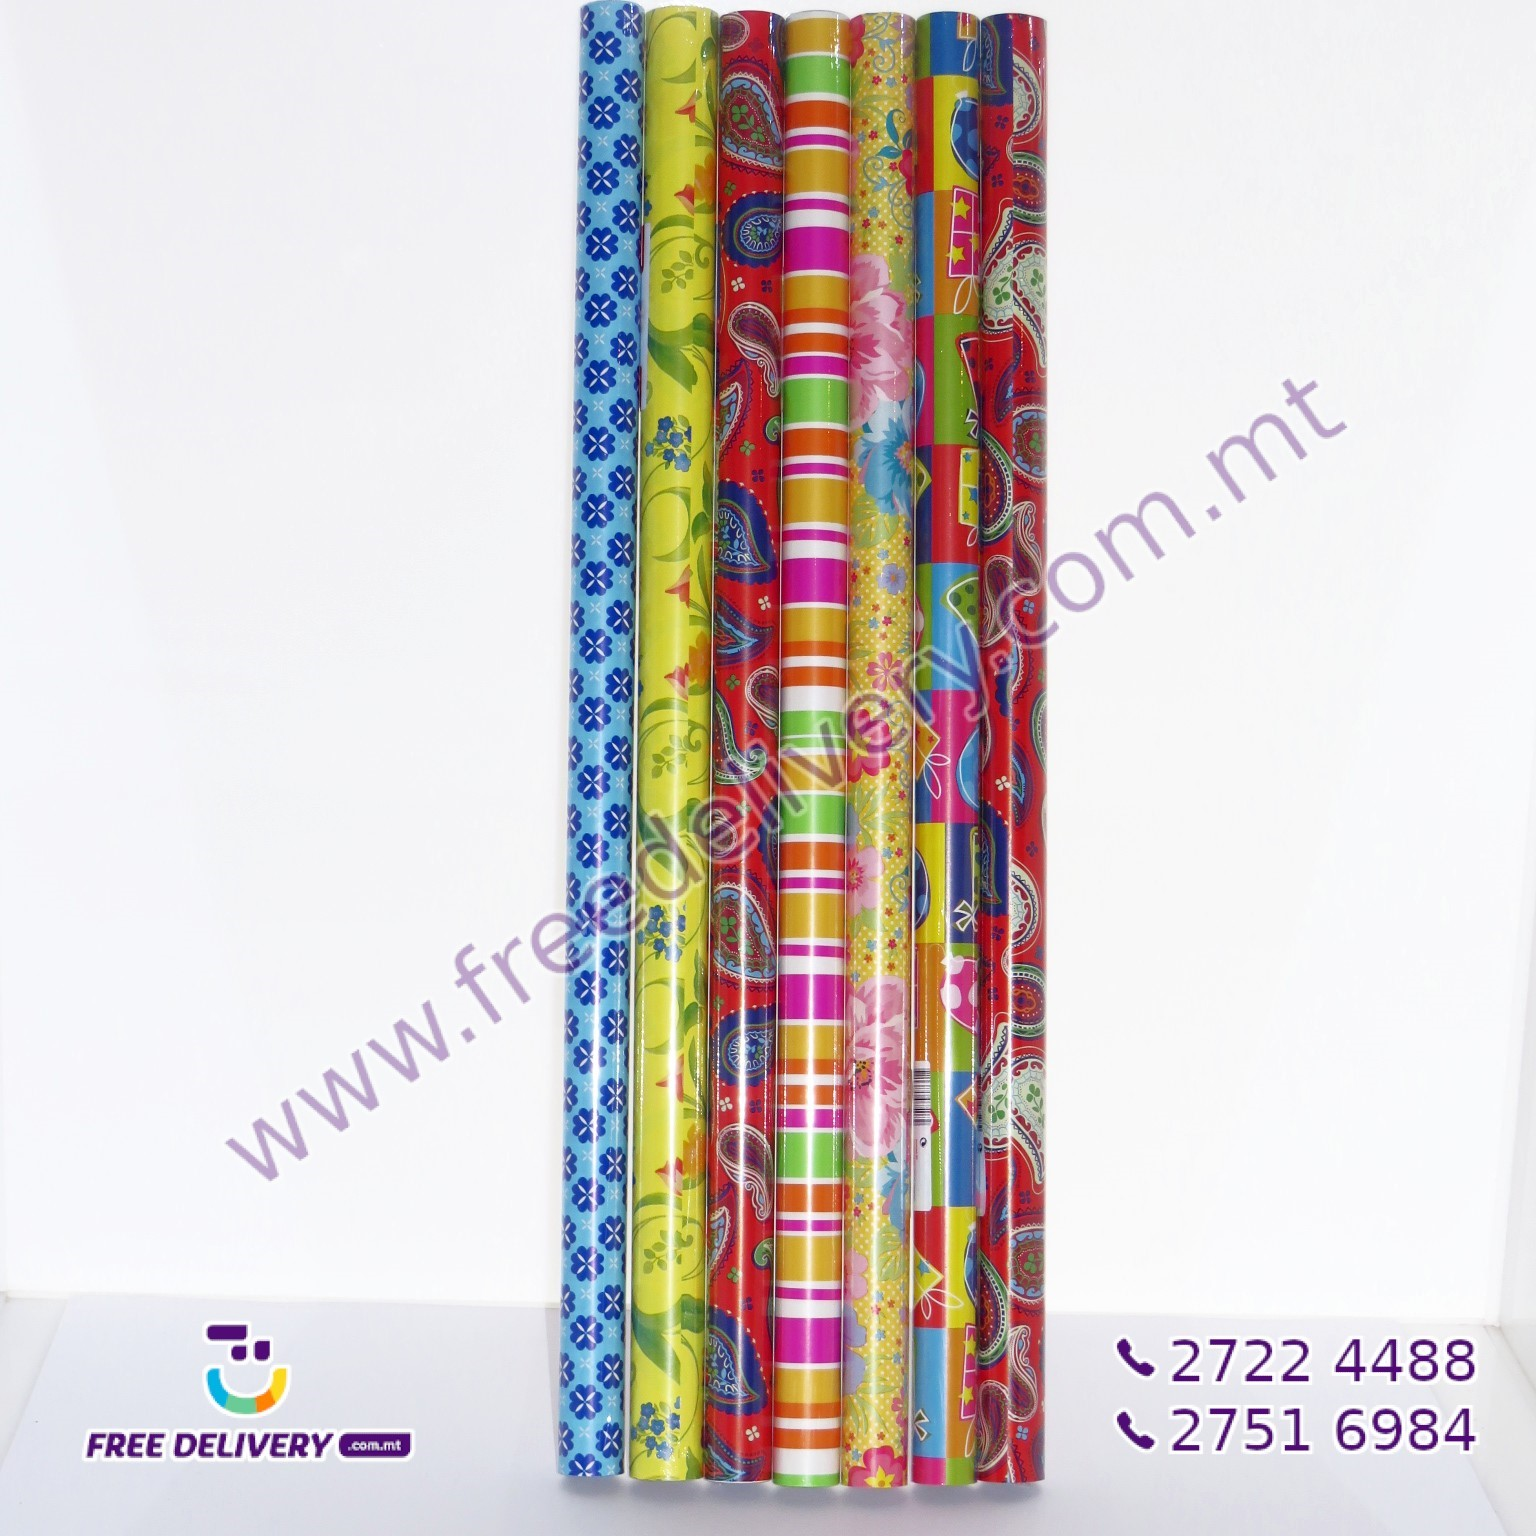 WRAPPING PAPER 200 X 70CM – MISC075082